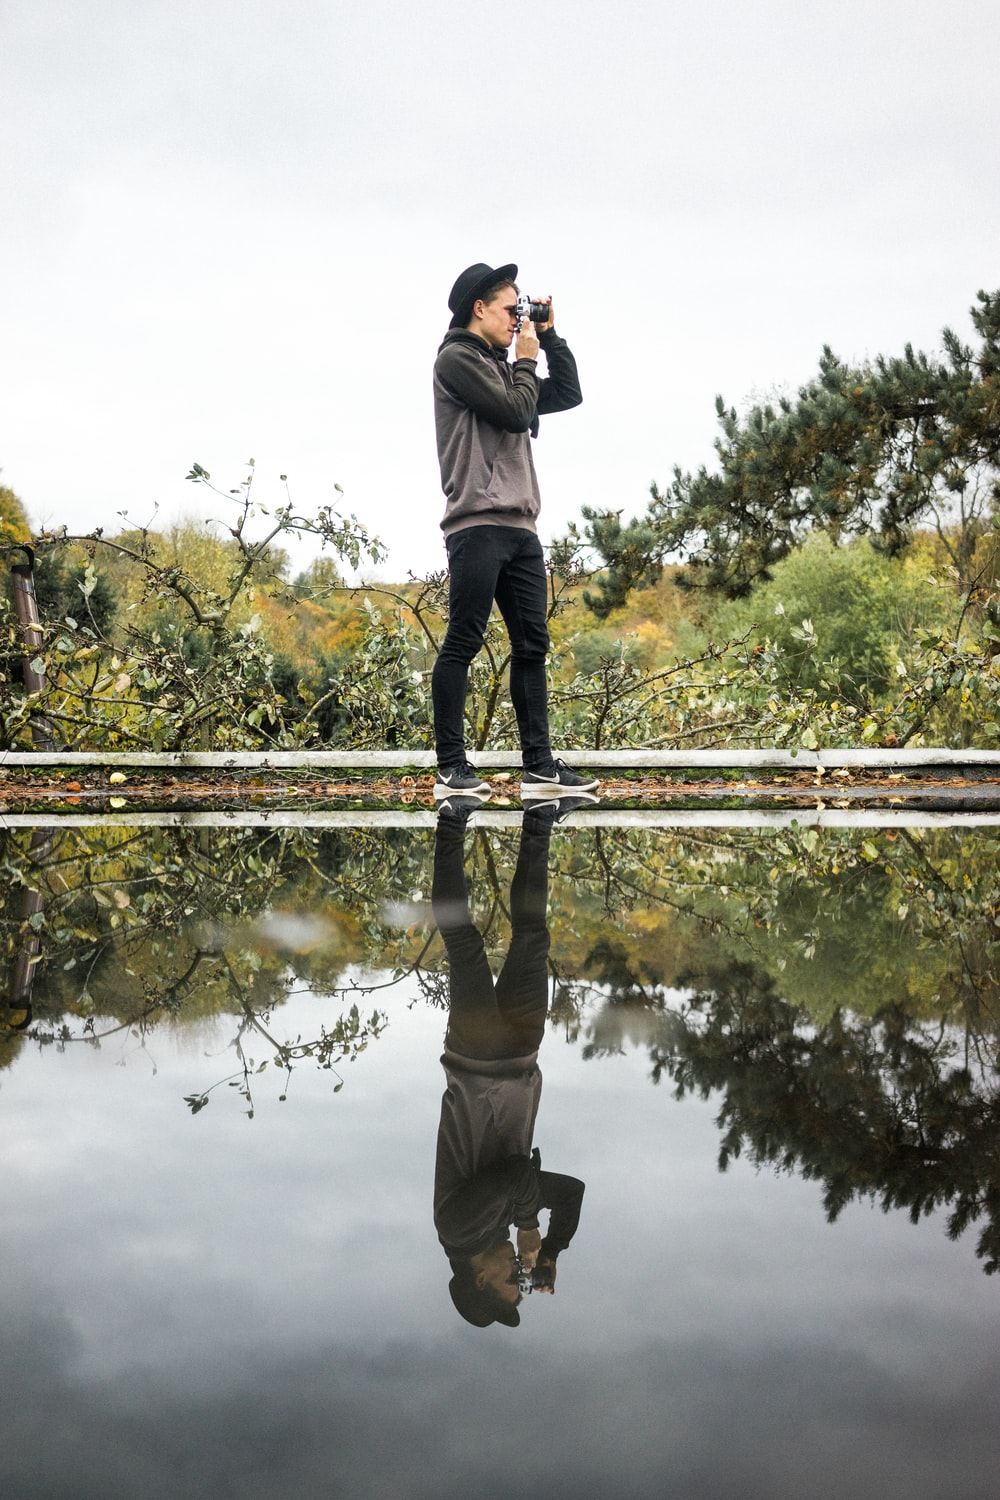 man standing near body of water using camera